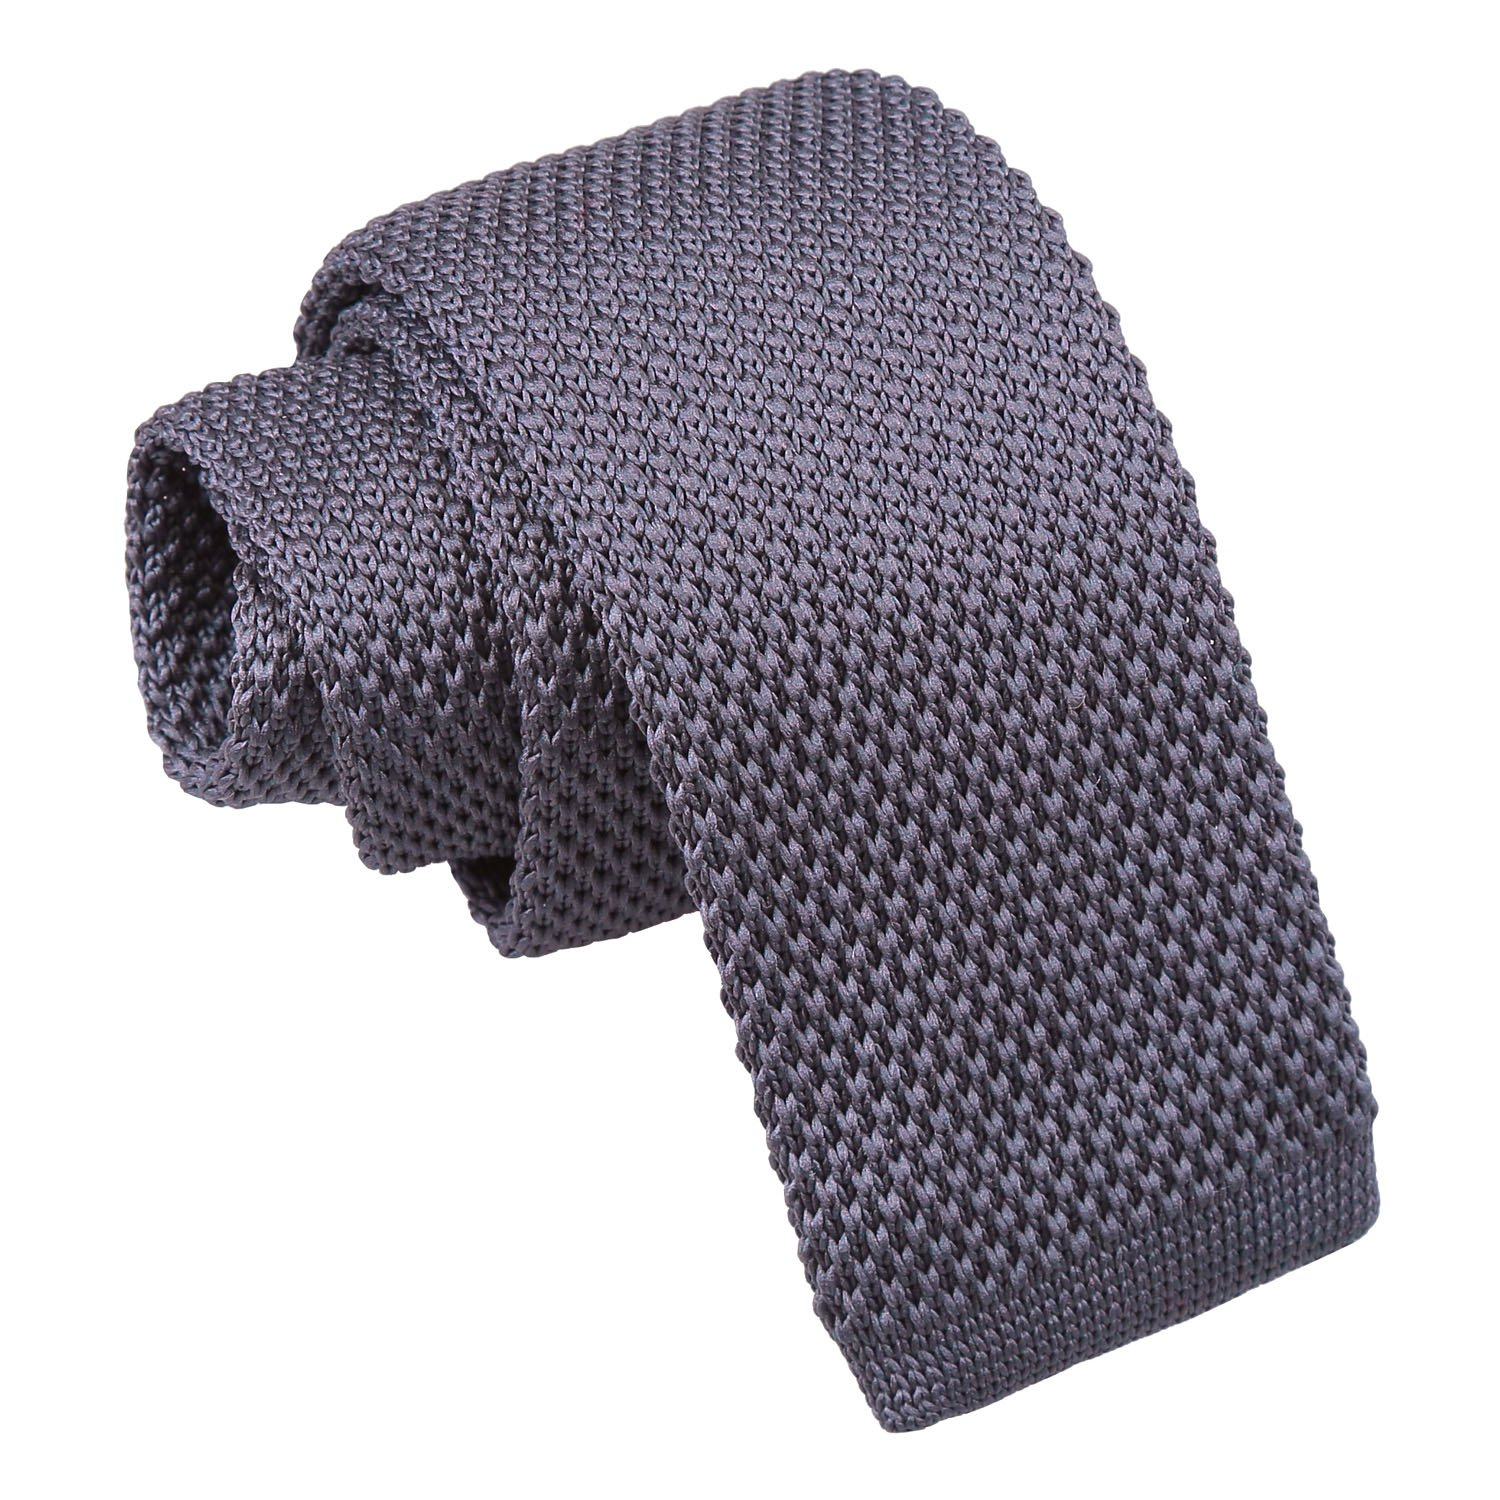 173104132417 Charcoal Knitted Tie for Boys